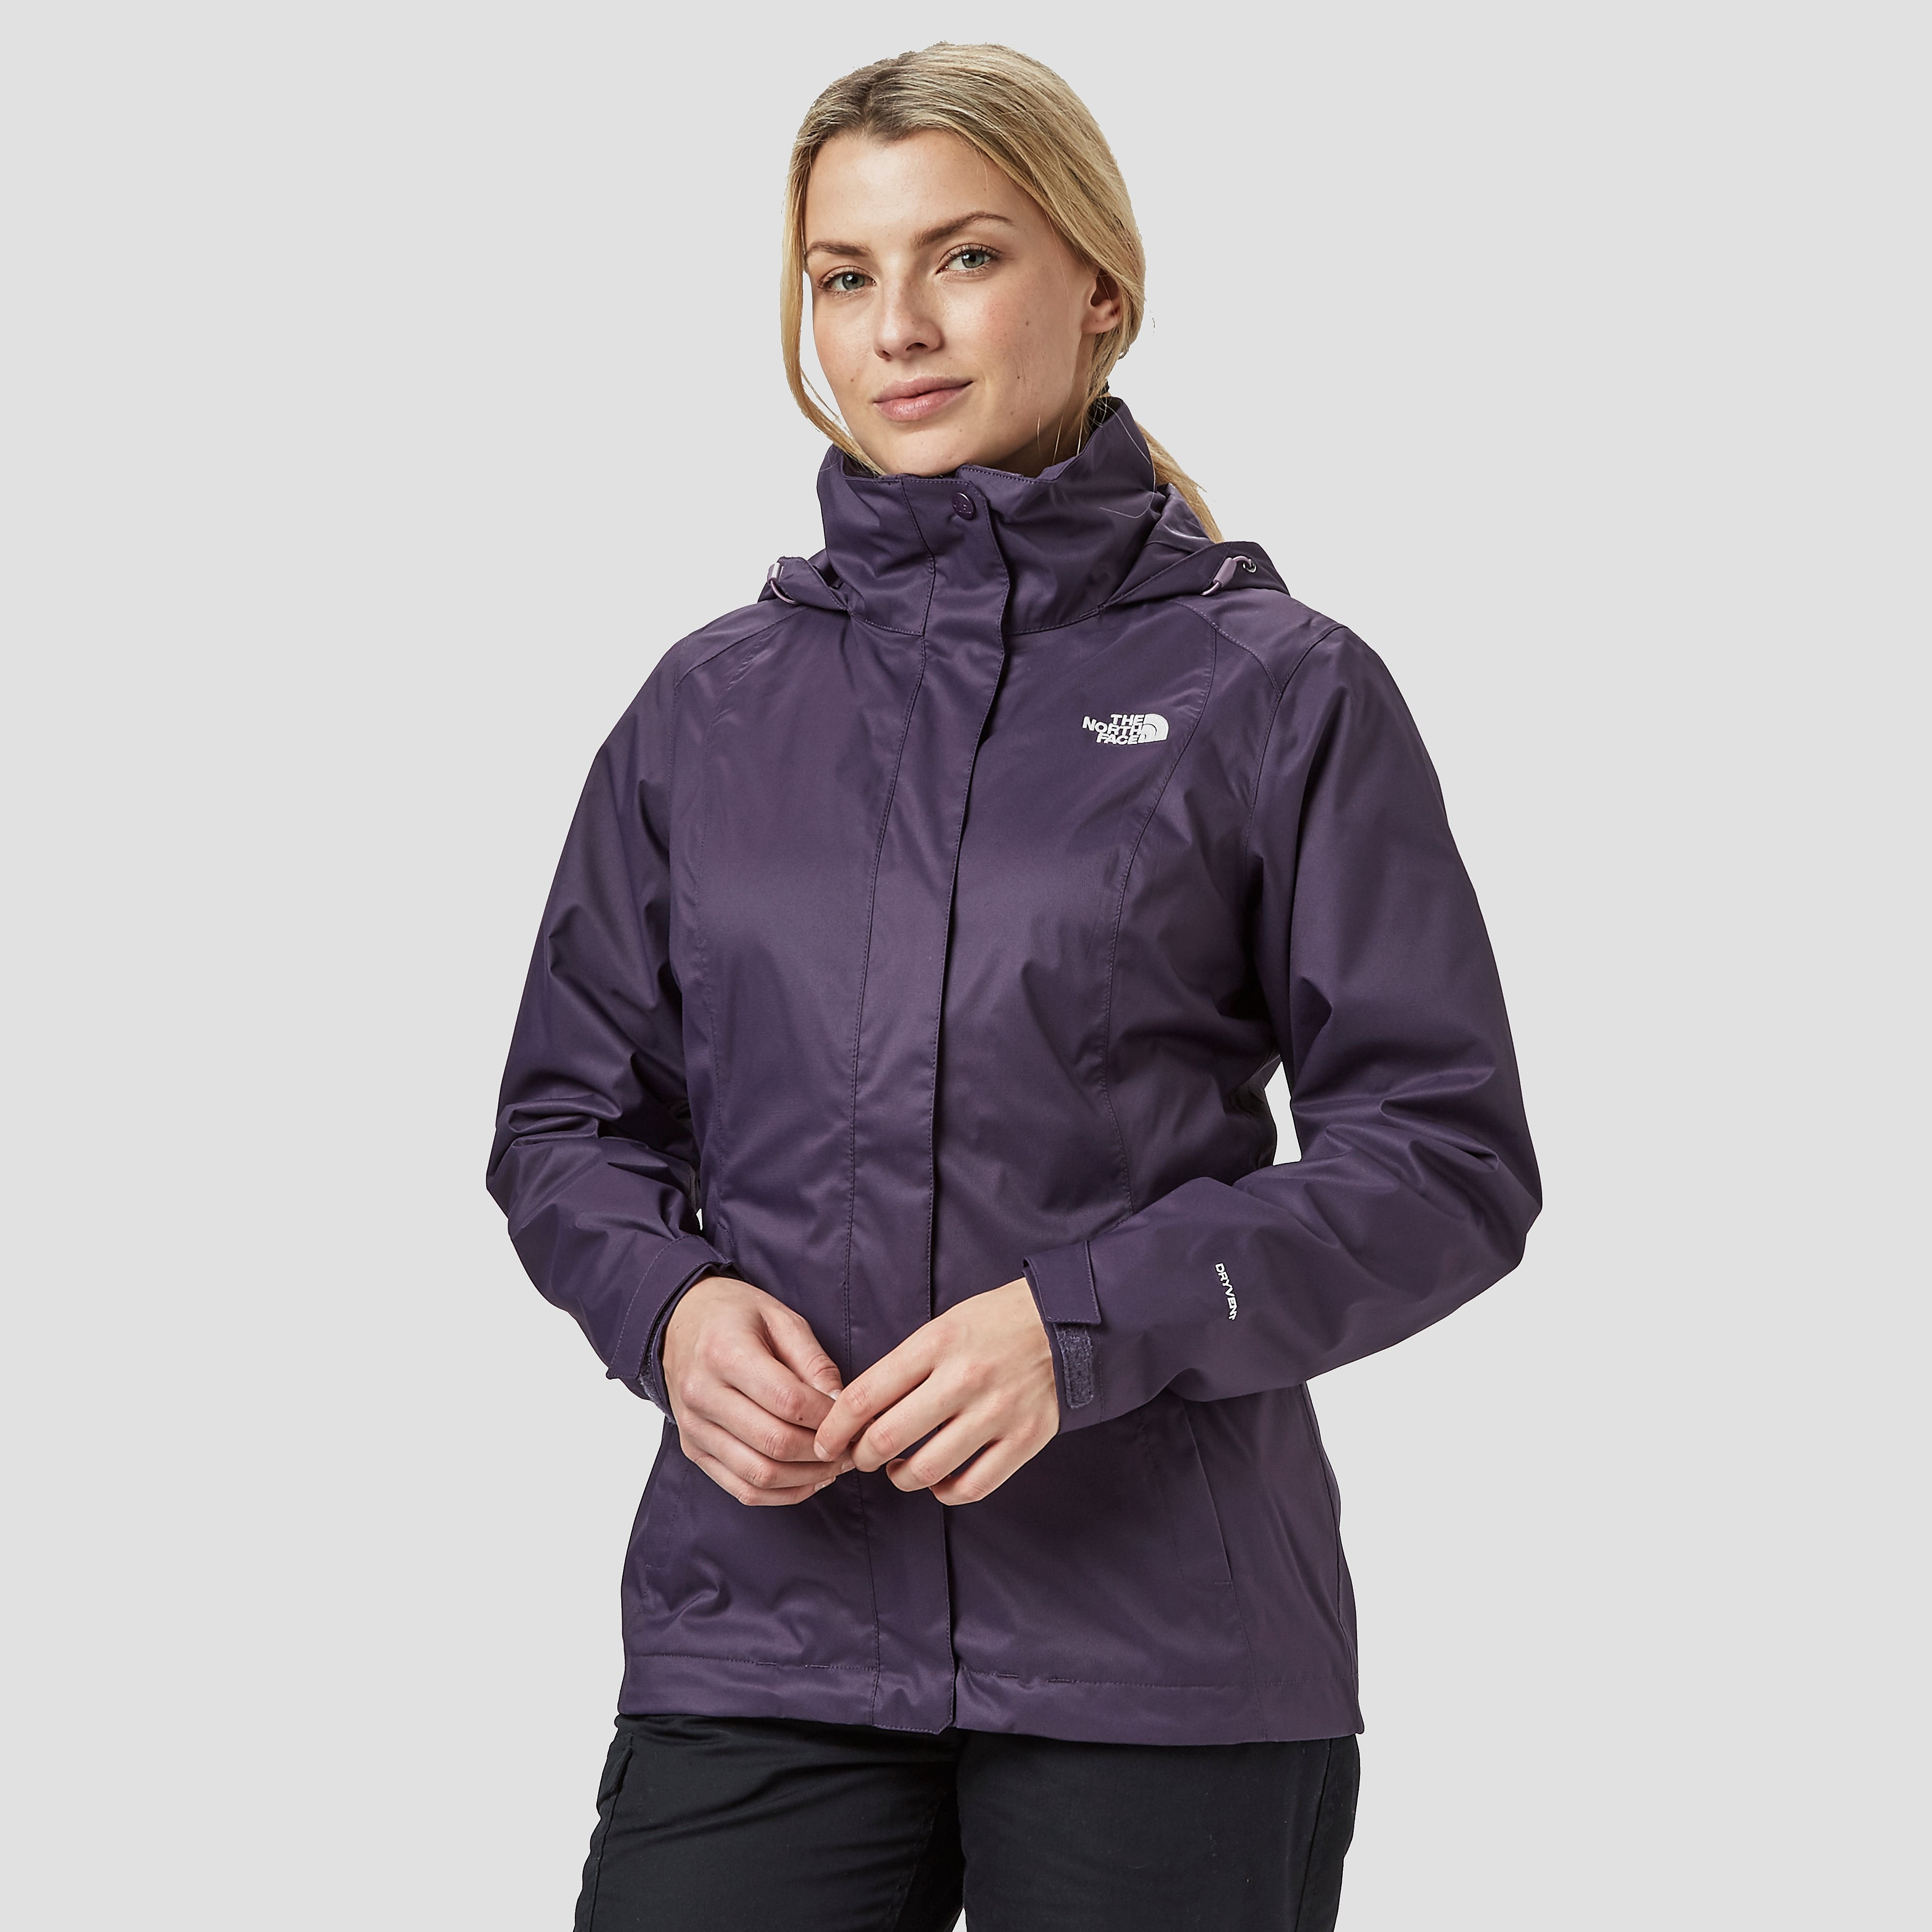 The North Face Evolve II Triclimate 3-in-1 Women's Jacket